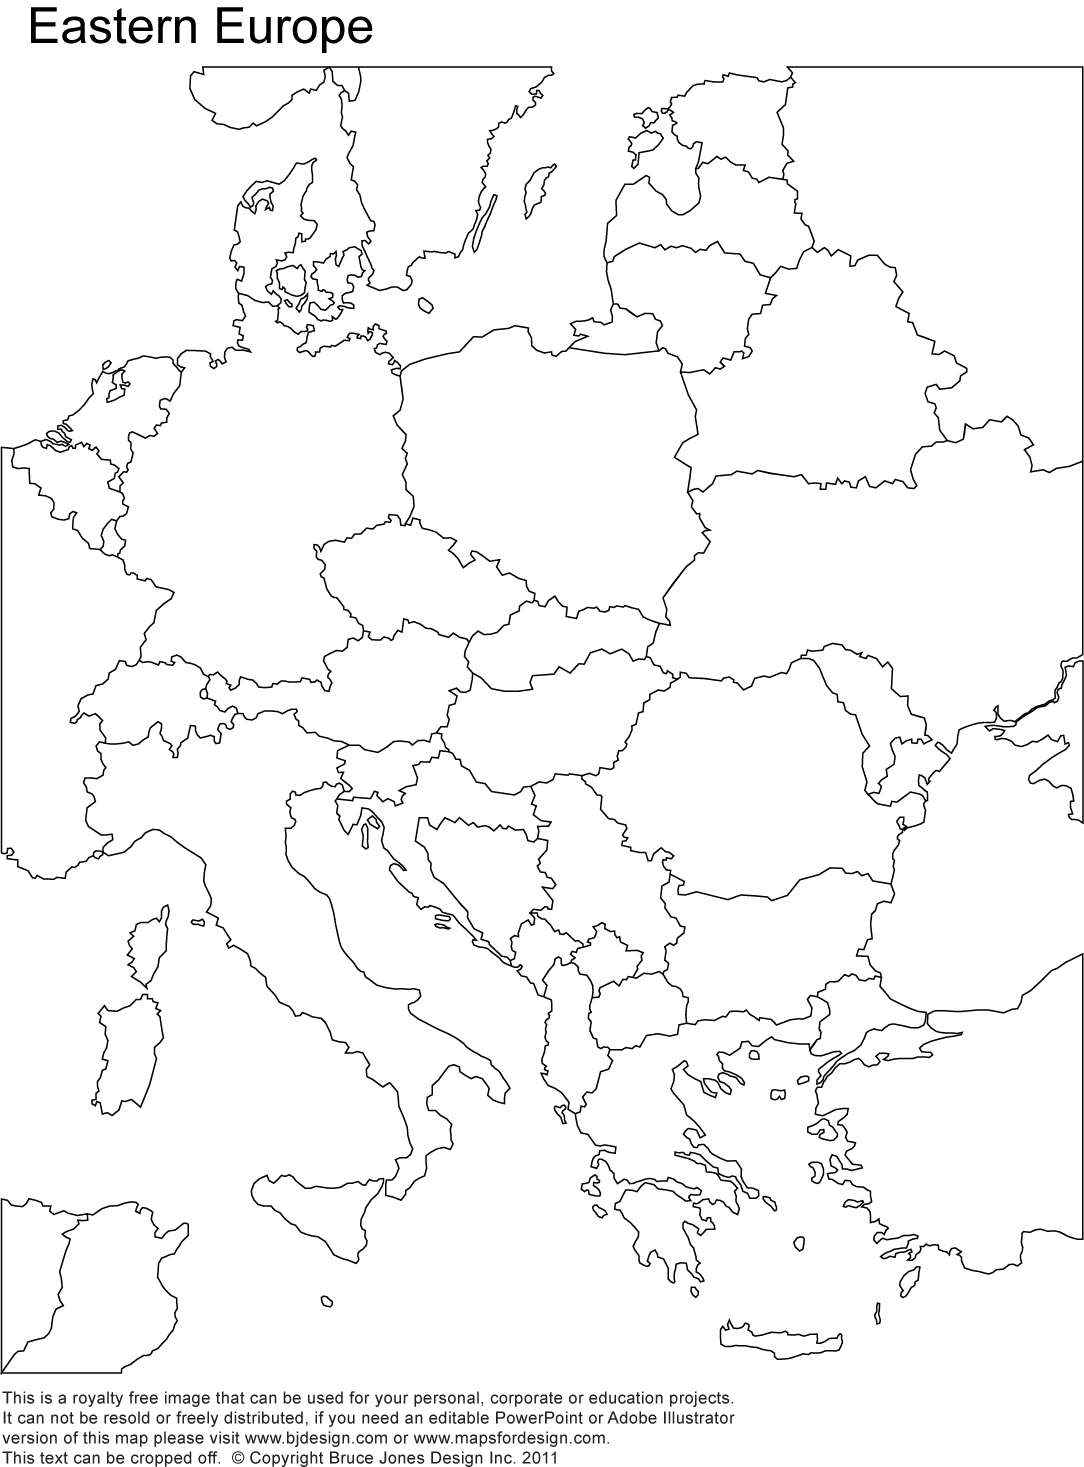 Eastern Europe Printable Blank map, royalty free, country borders